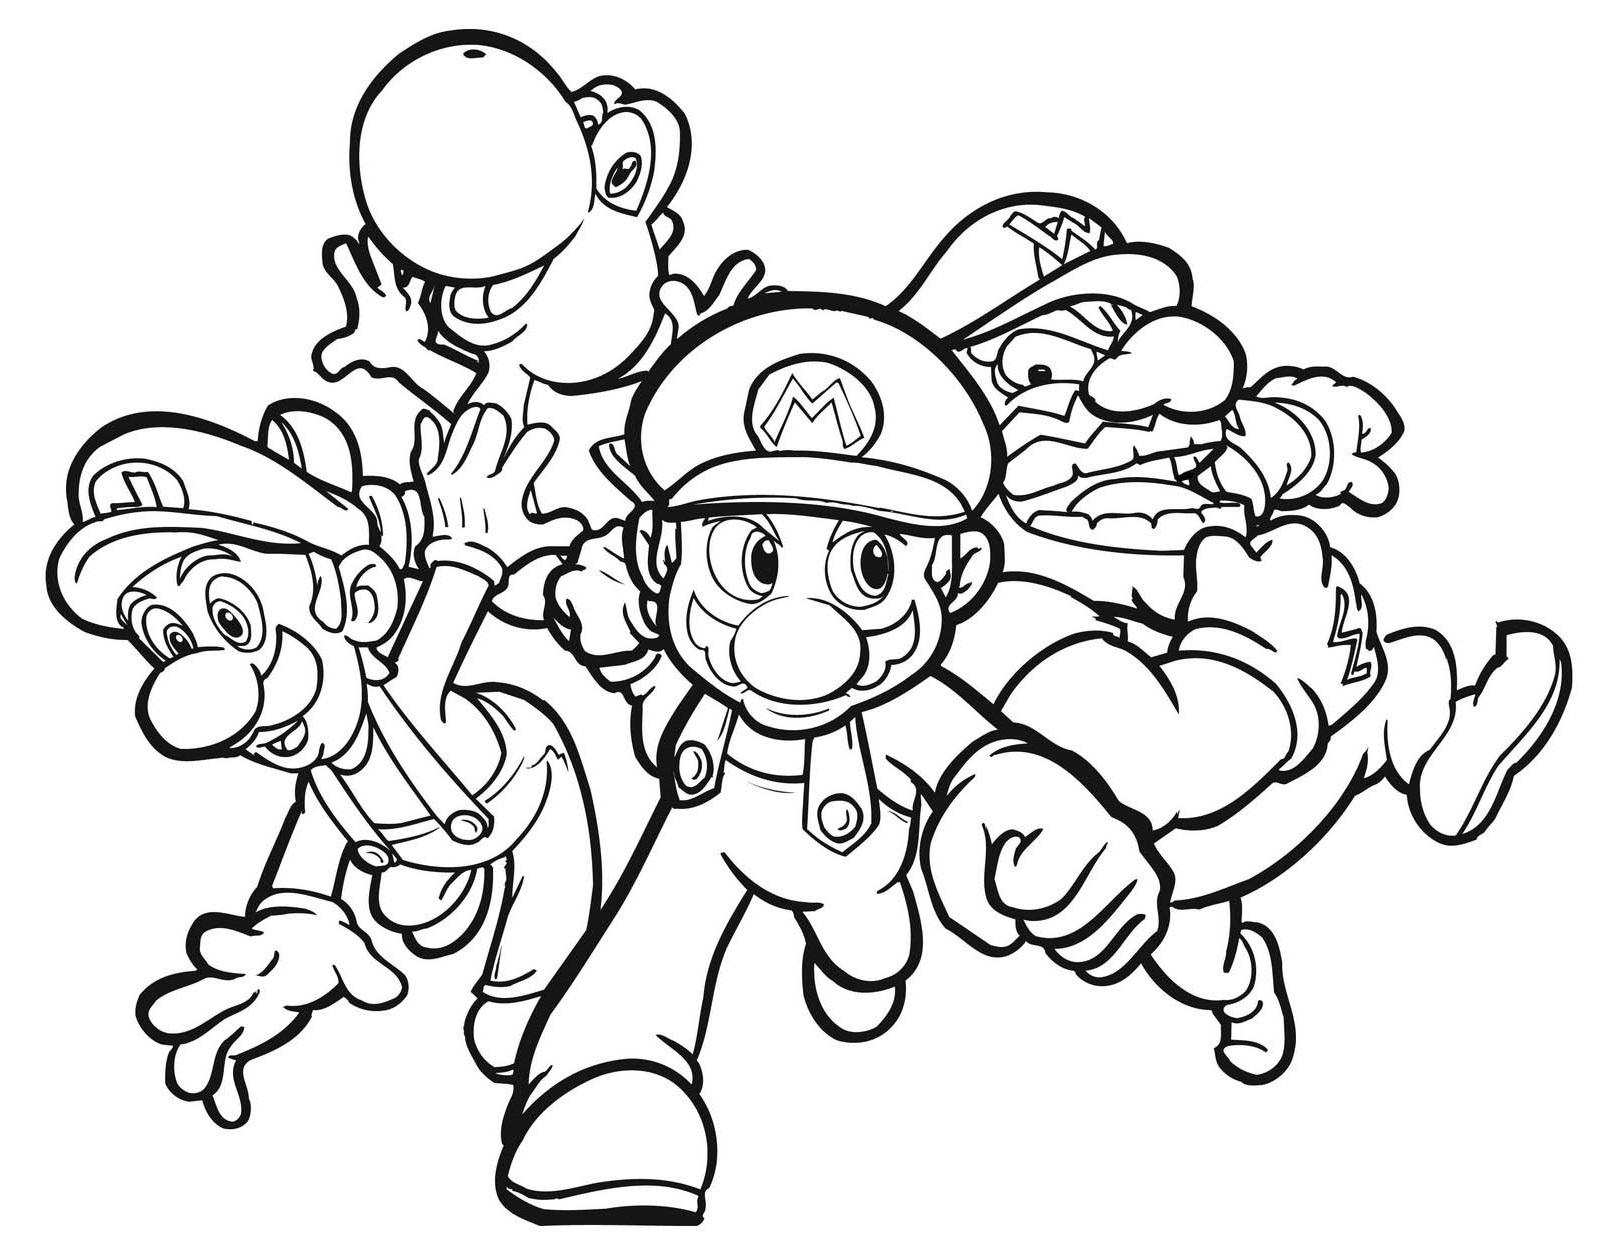 Goomba Coloring Page At Getdrawingscom Free For Personal Use